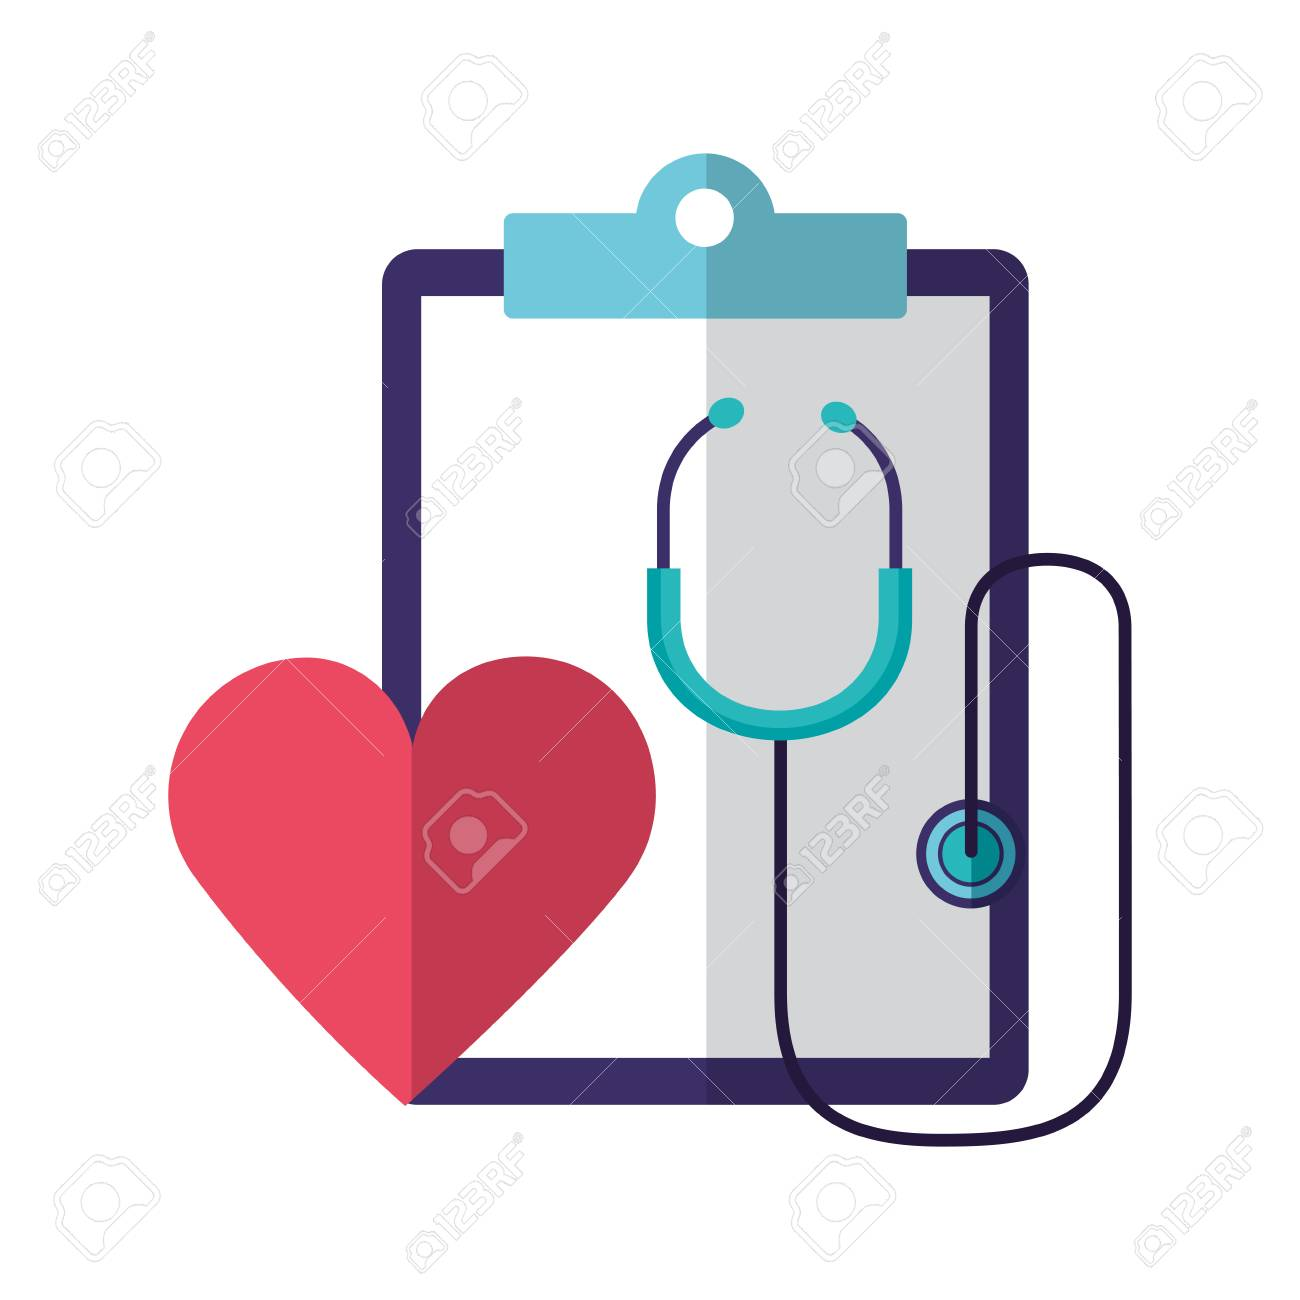 heartbeat stethoscope clipboard report world health day vector illustration - 124715345